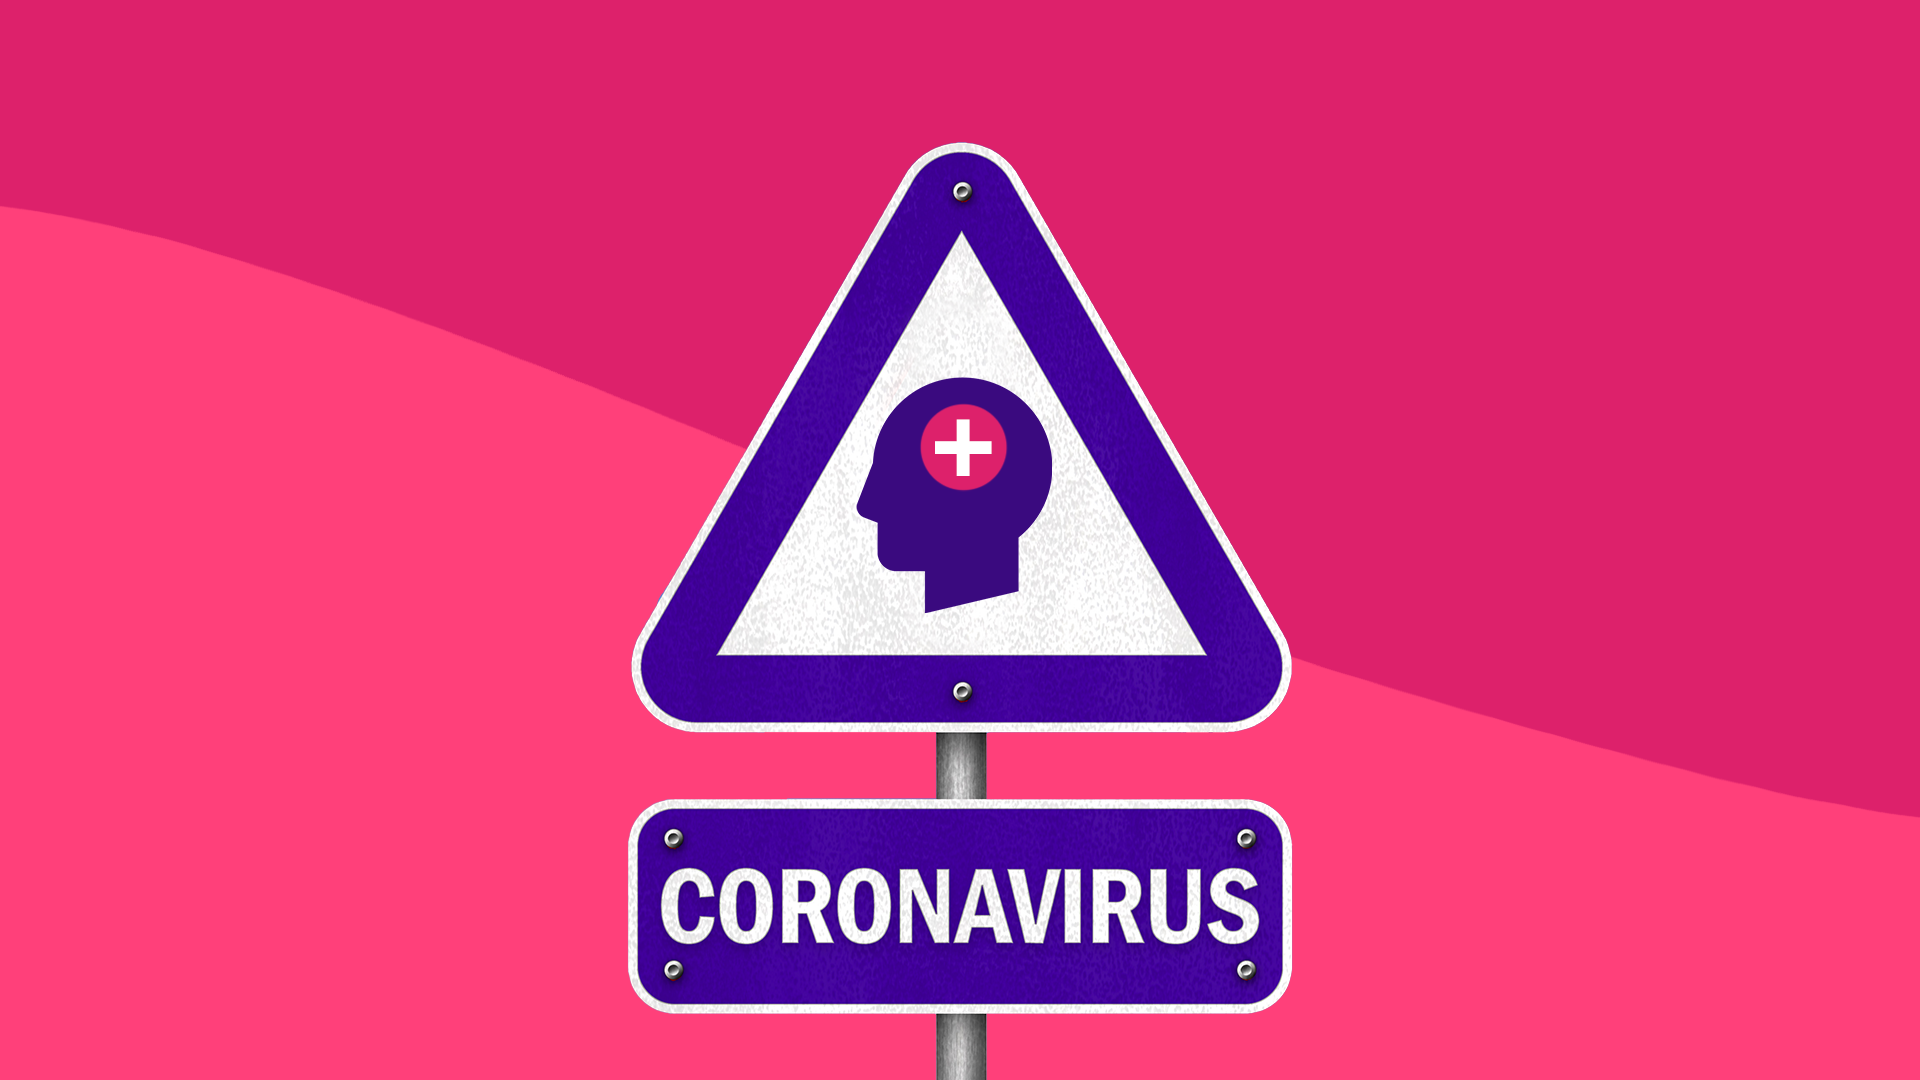 Protecting your mental health while social distancing during the coronavirus outbreak